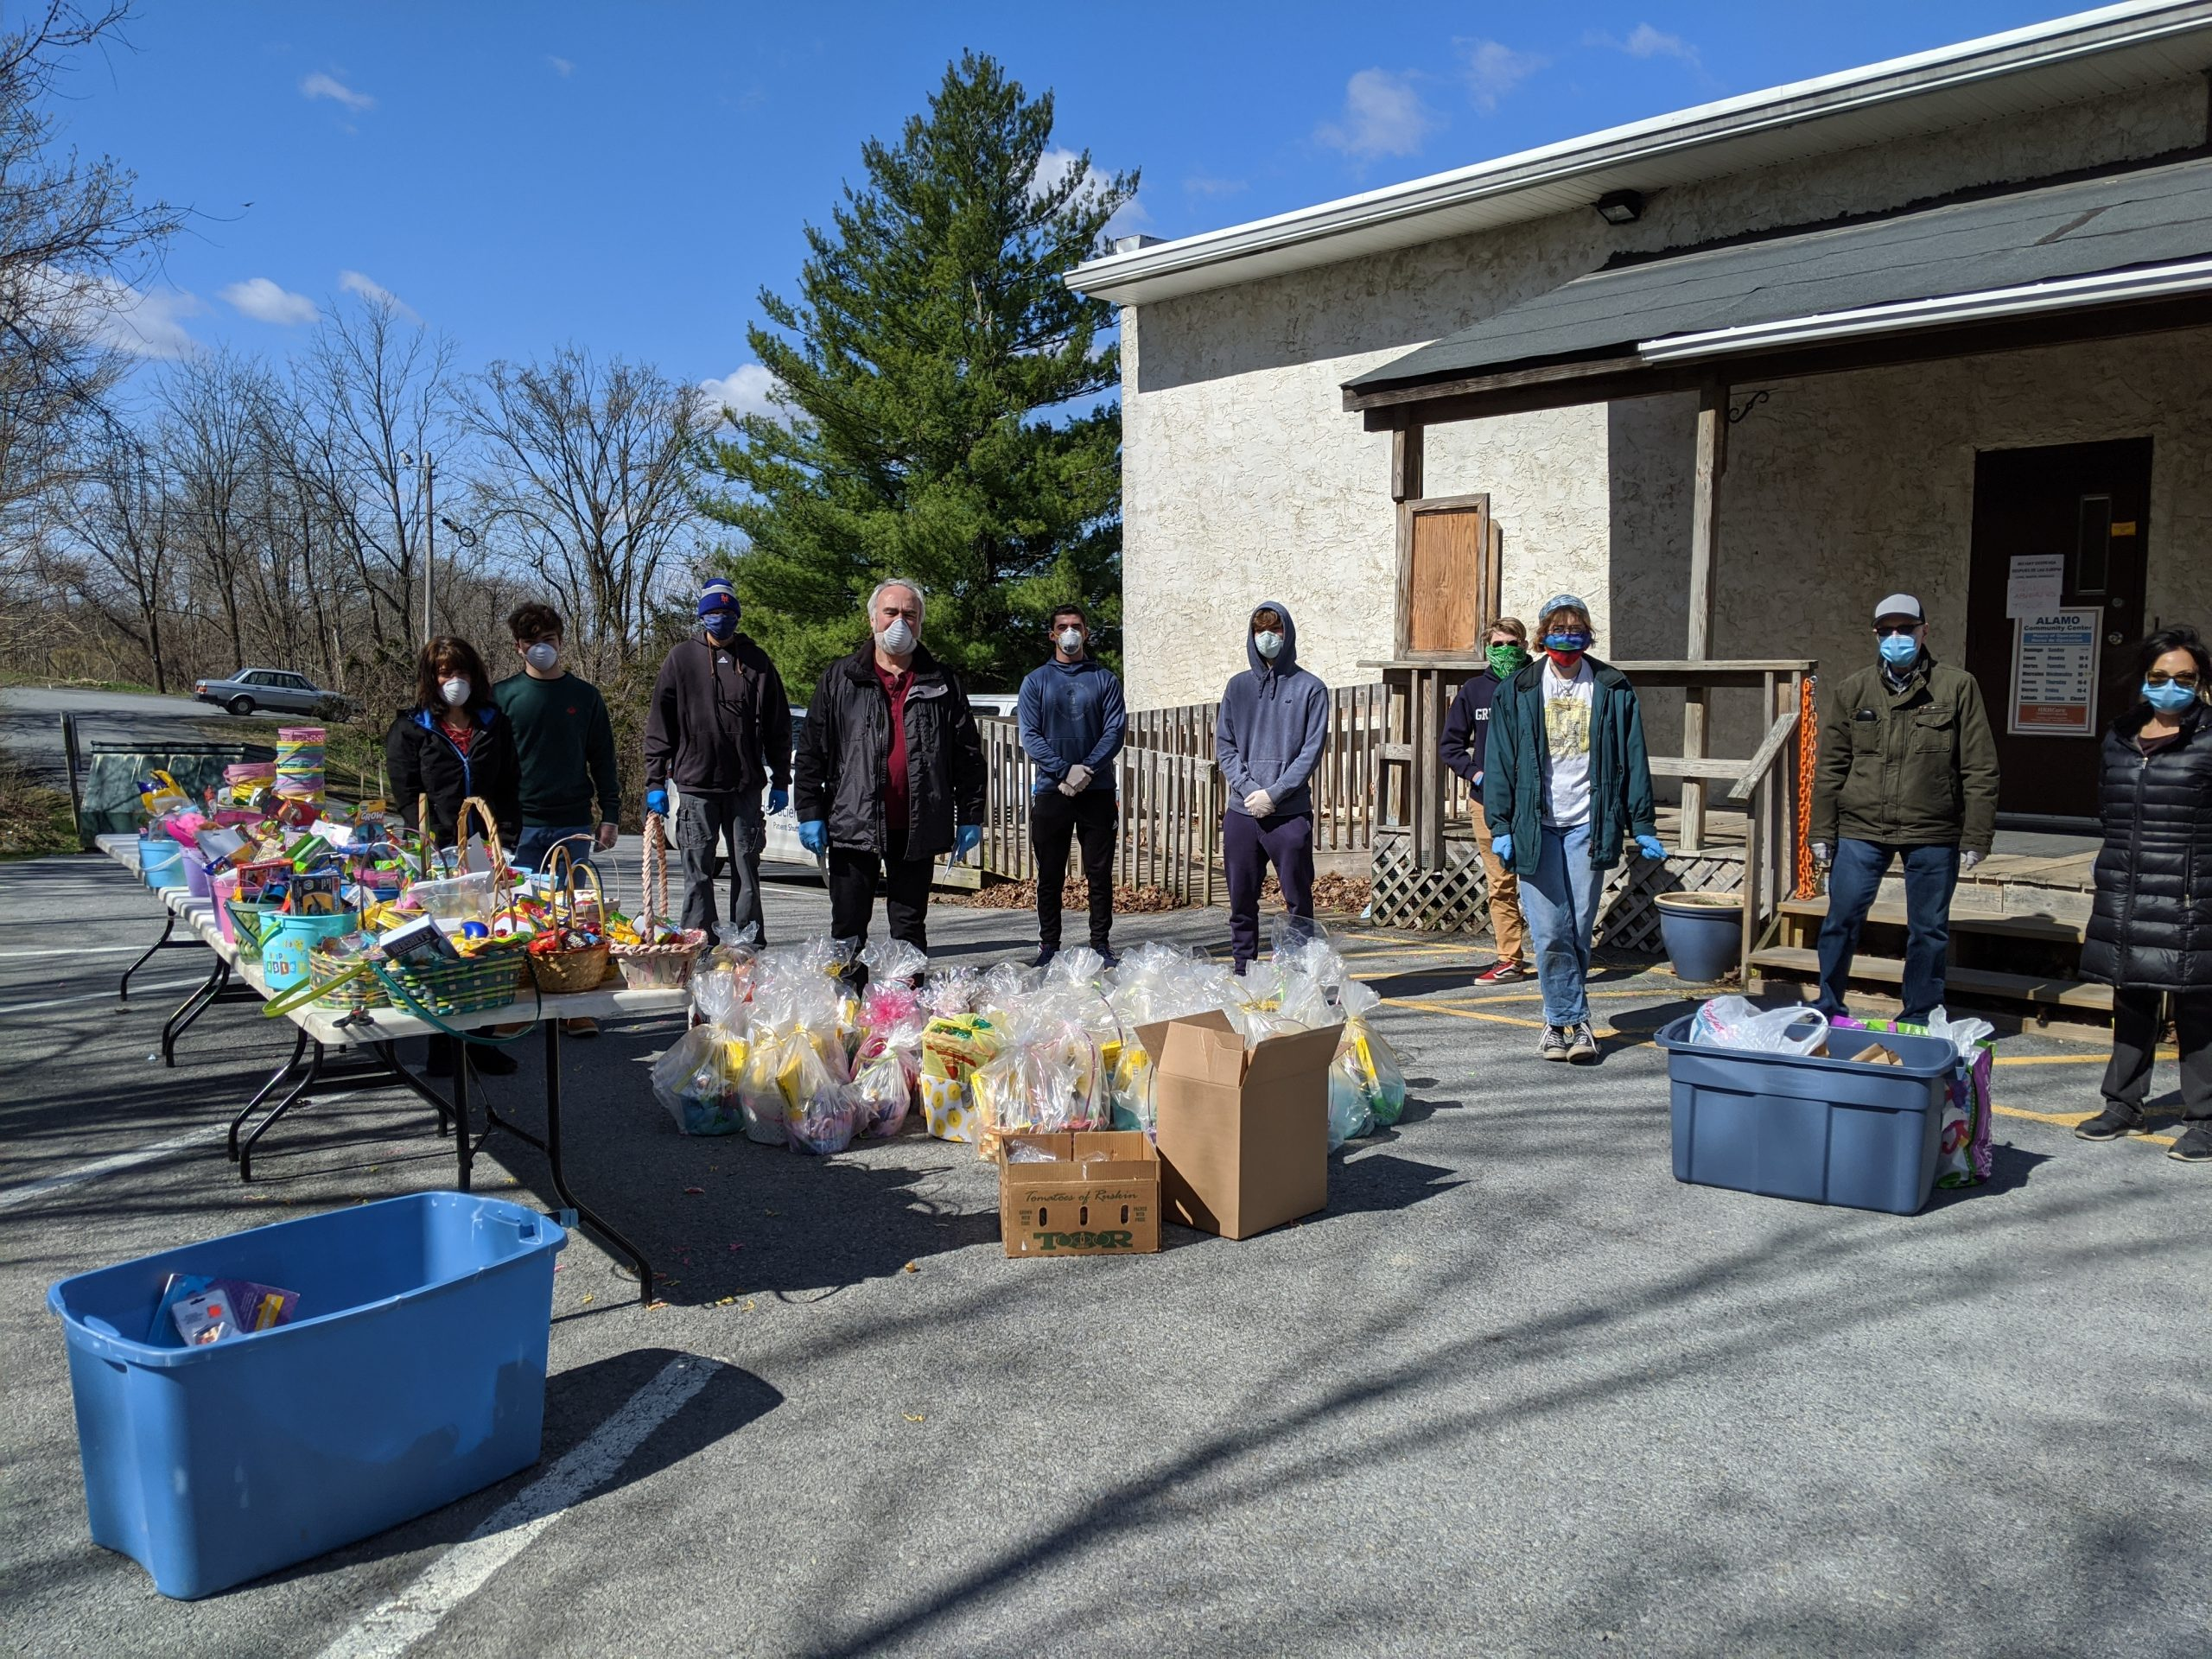 The WAMC delivered 120 Easter Baskets last weekend!